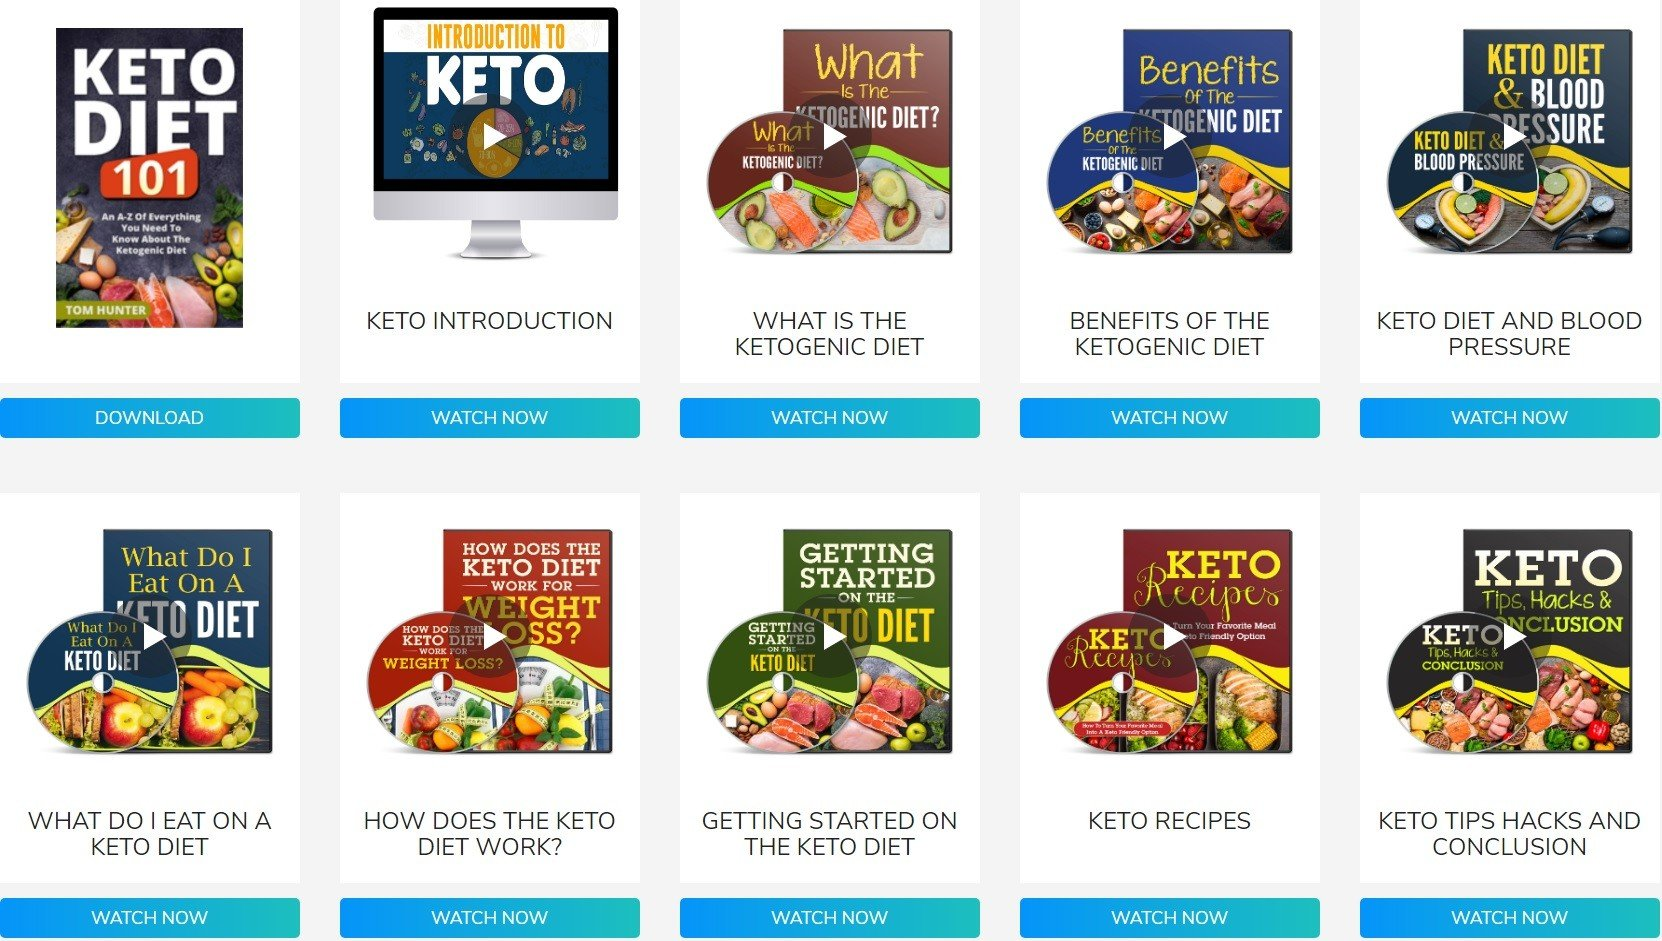 Buy Plan Custom Keto Diet Ebay